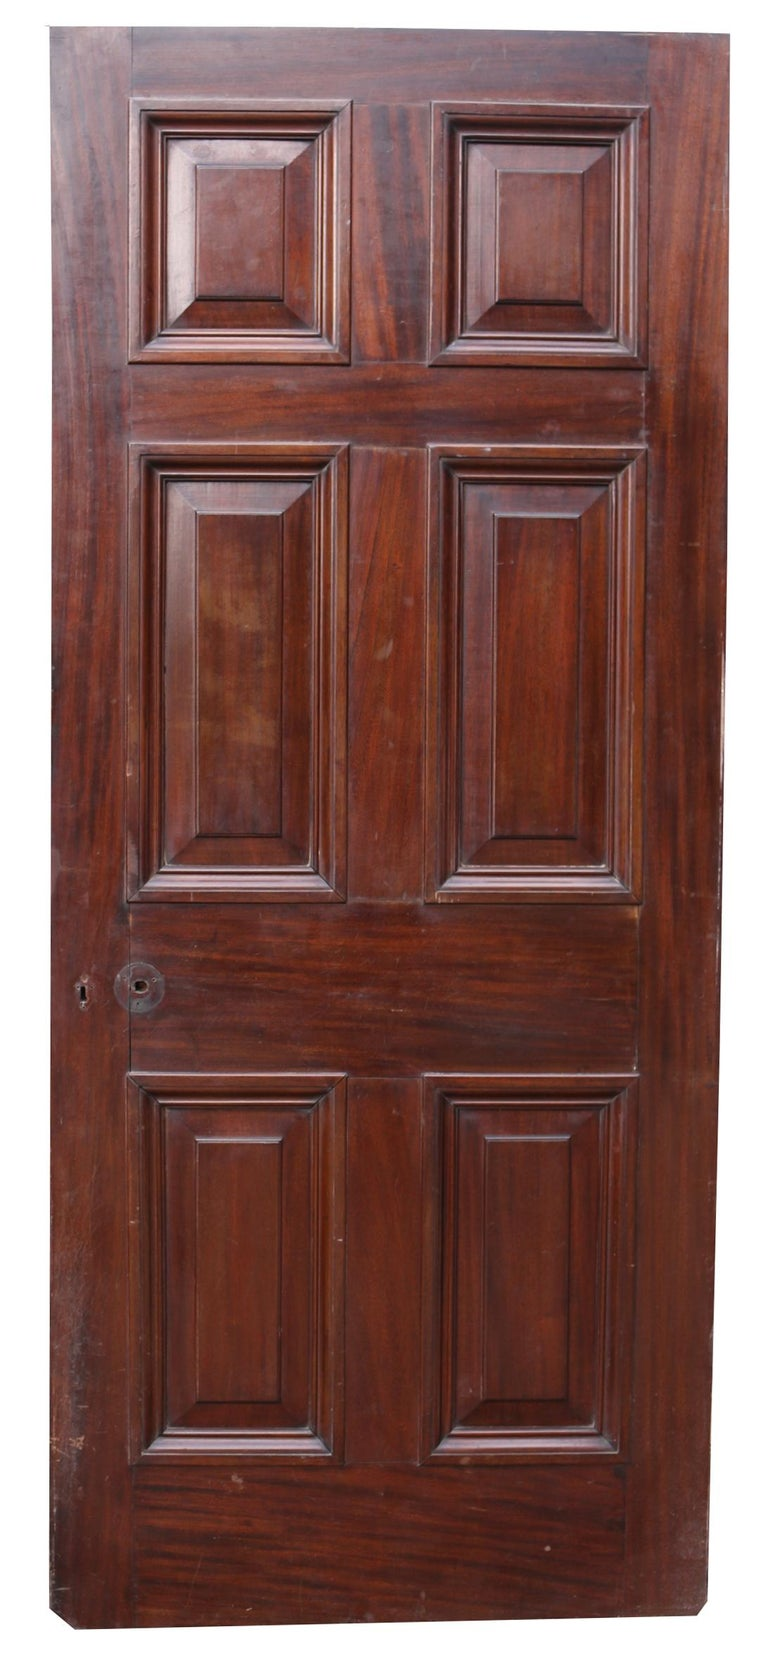 About  This beautiful door has raised and fielded panels and has a wax finish.  The hinges are present, there is no handle and the lock is not in working order.   There are no losses to the moulding.  Condition report  In excellent